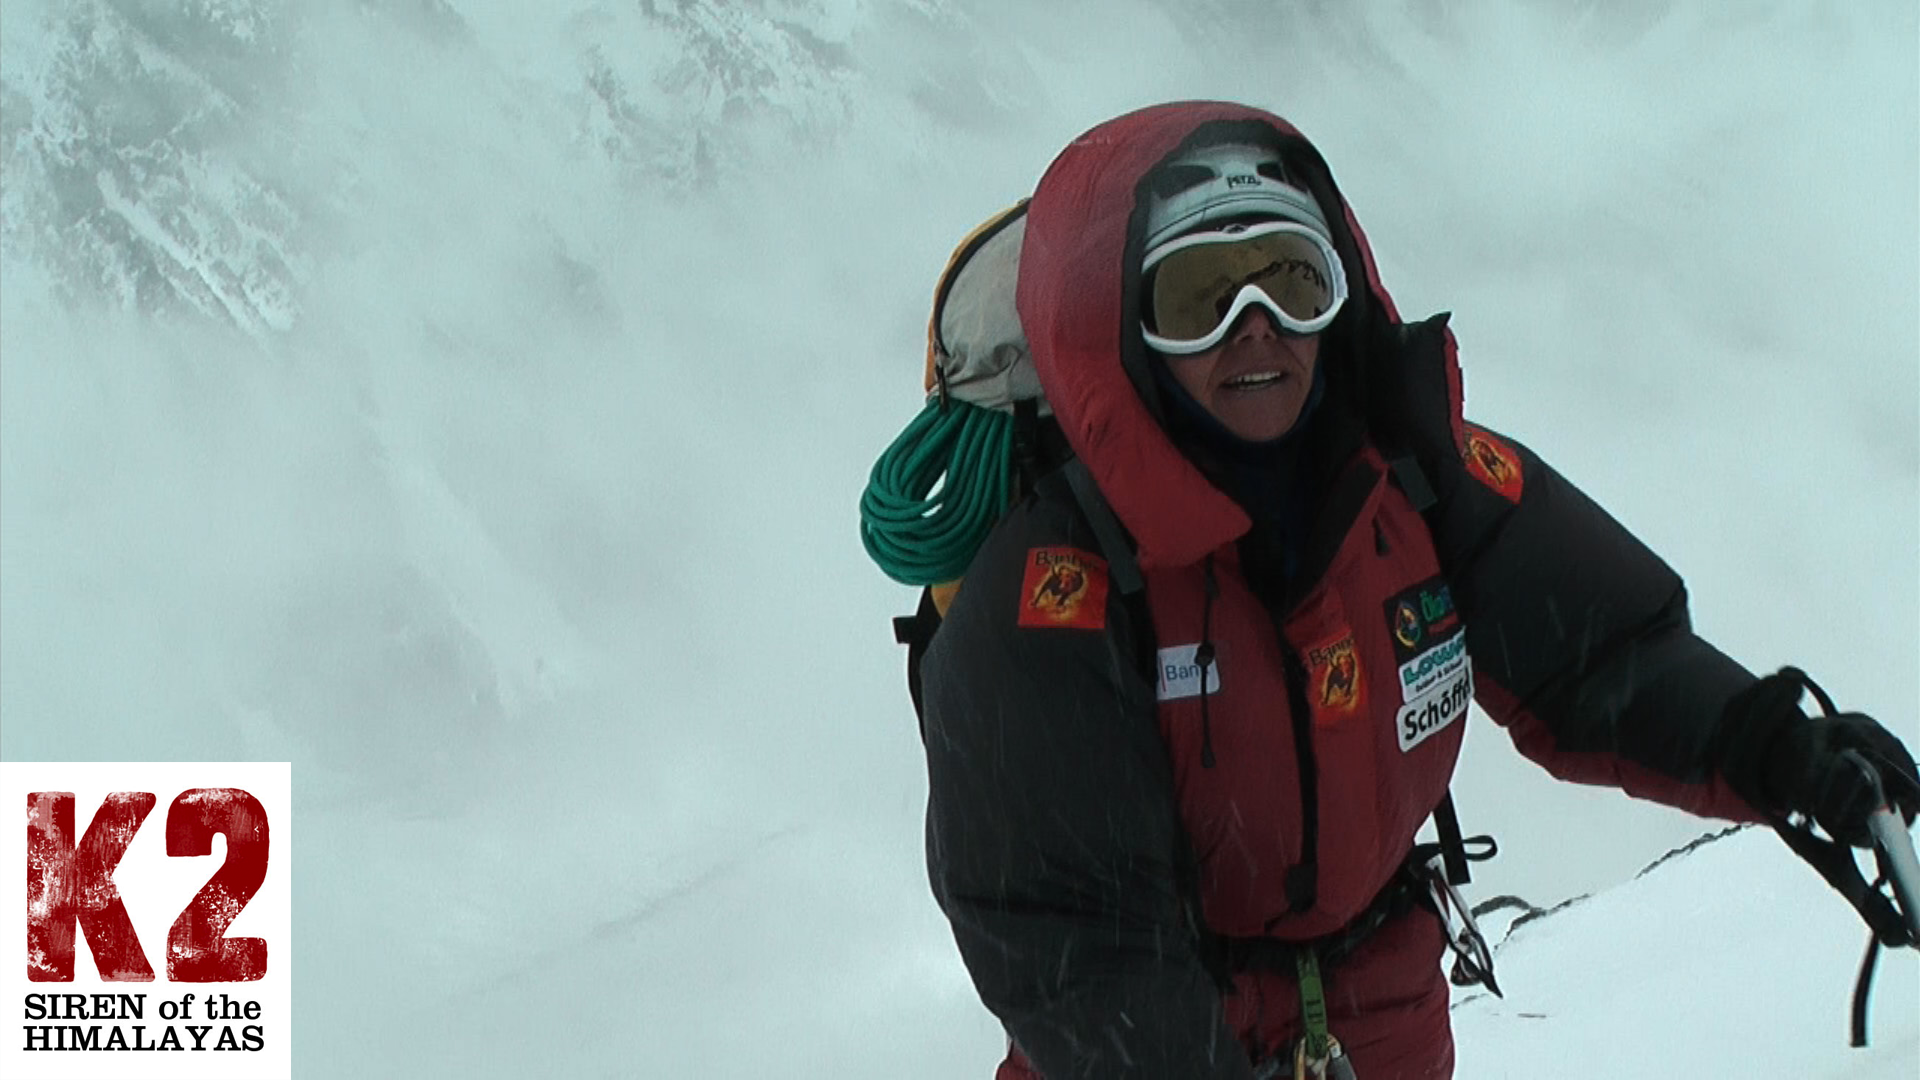 Gerlinde Kaltenbrunner, National Geographic 2012 Explorer of the Year, climbs K2